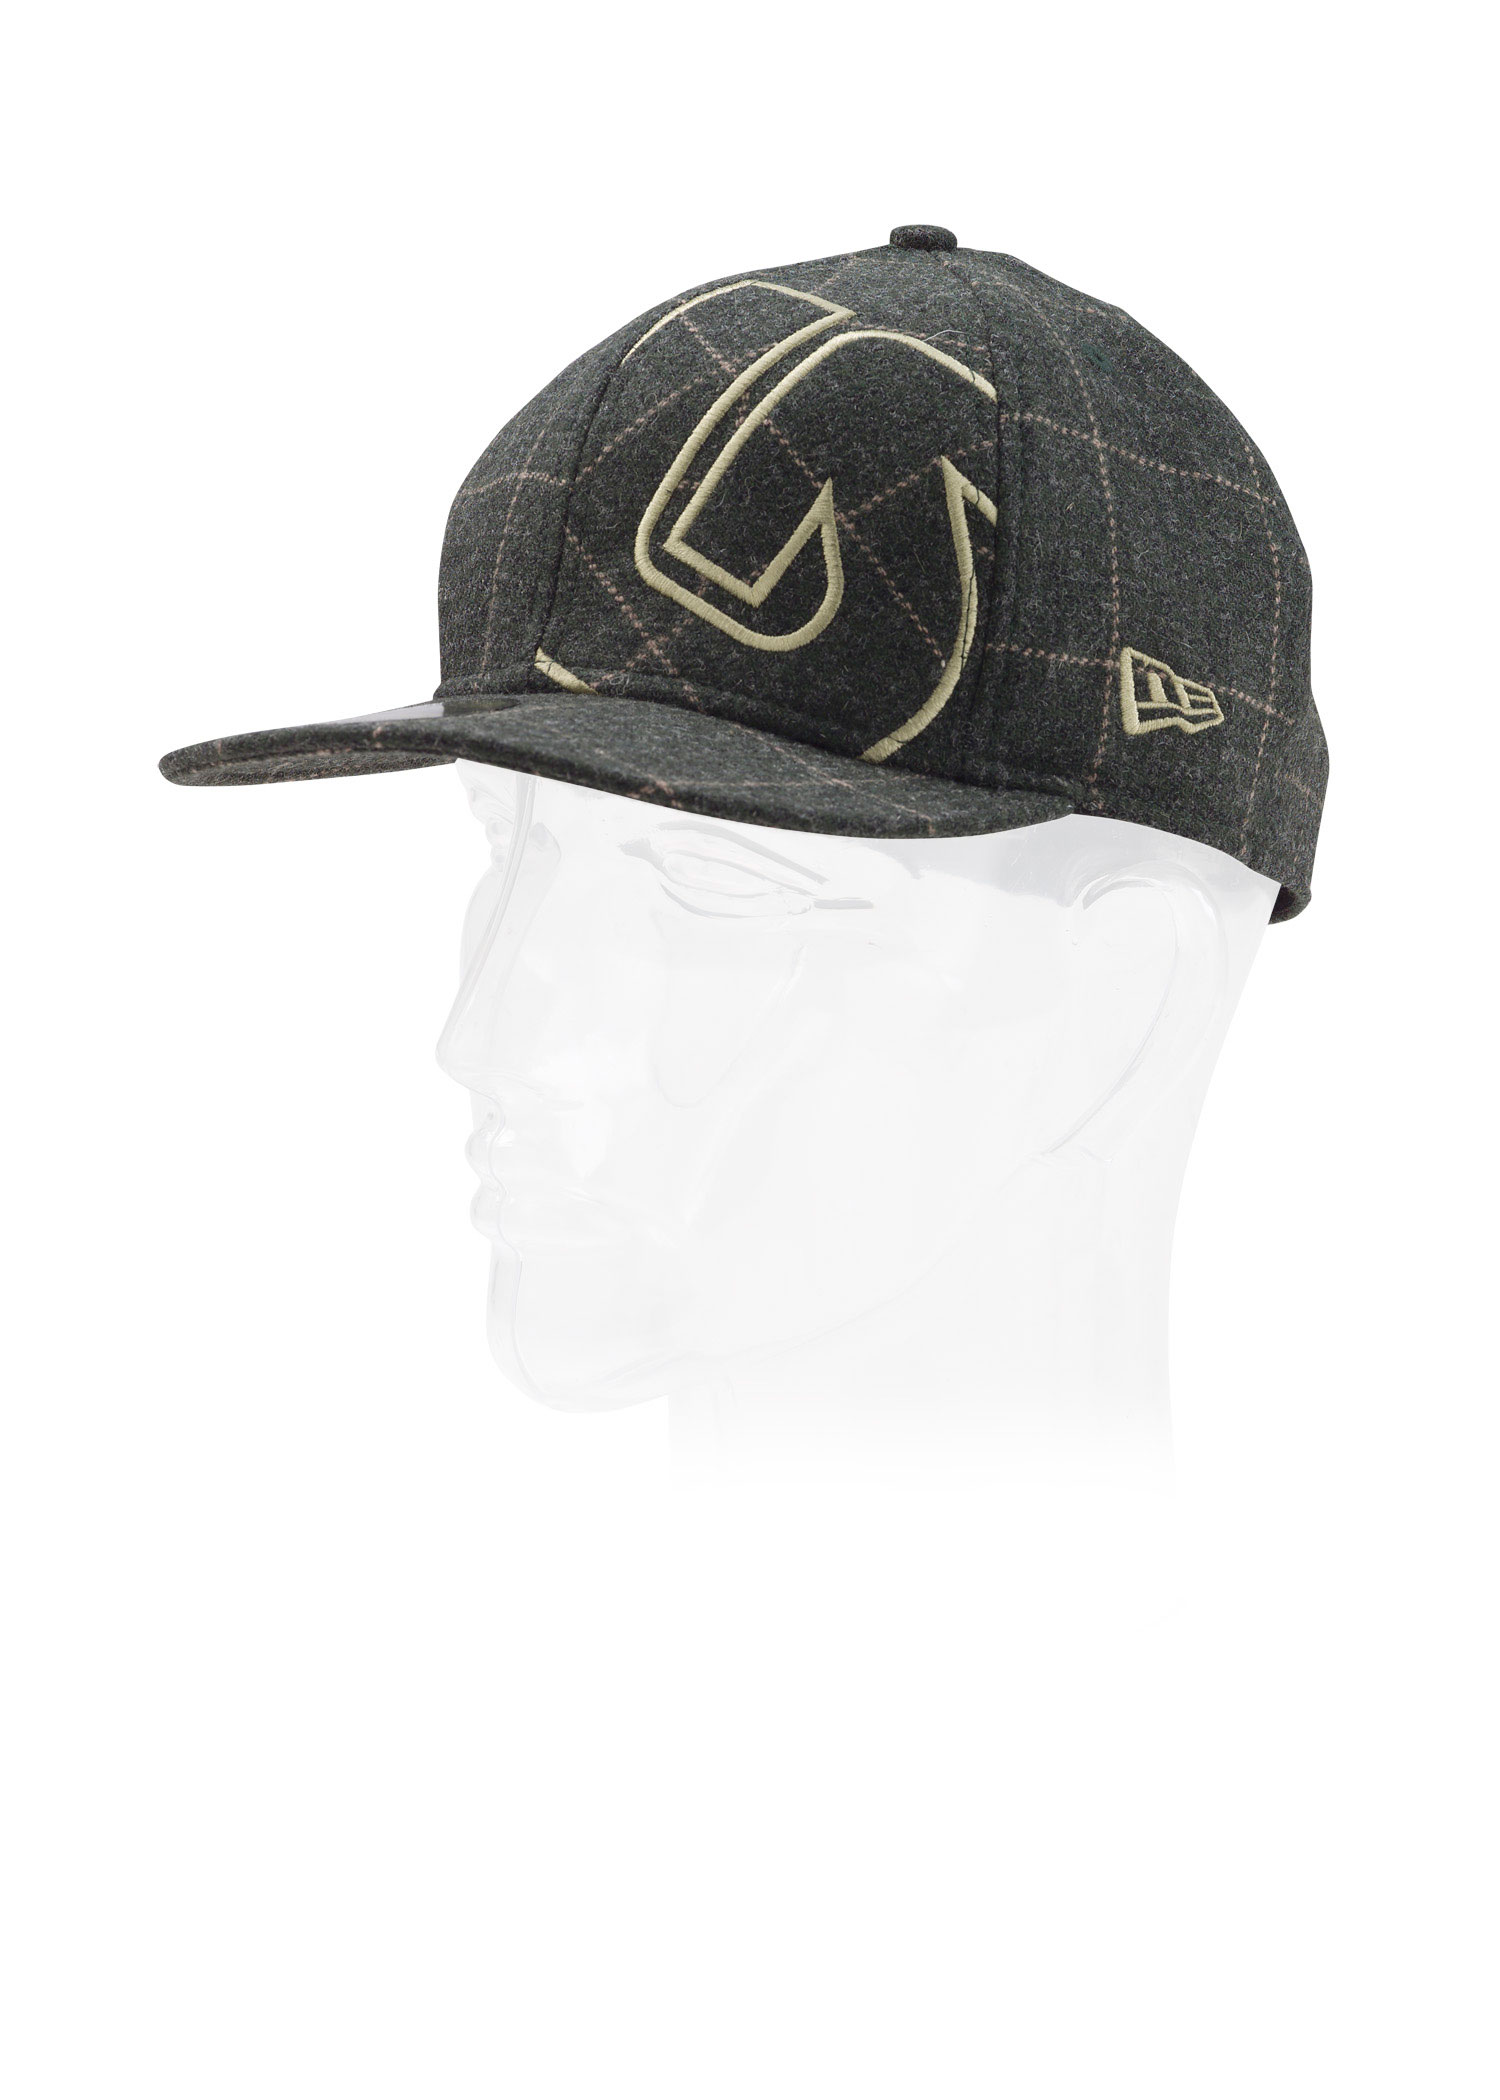 Snowboard Key Features of the Burton Slider New Era Cap: Fabric Content Varies by Style Process Logo Applique with Assorted Fabrics and Fills - $9.99